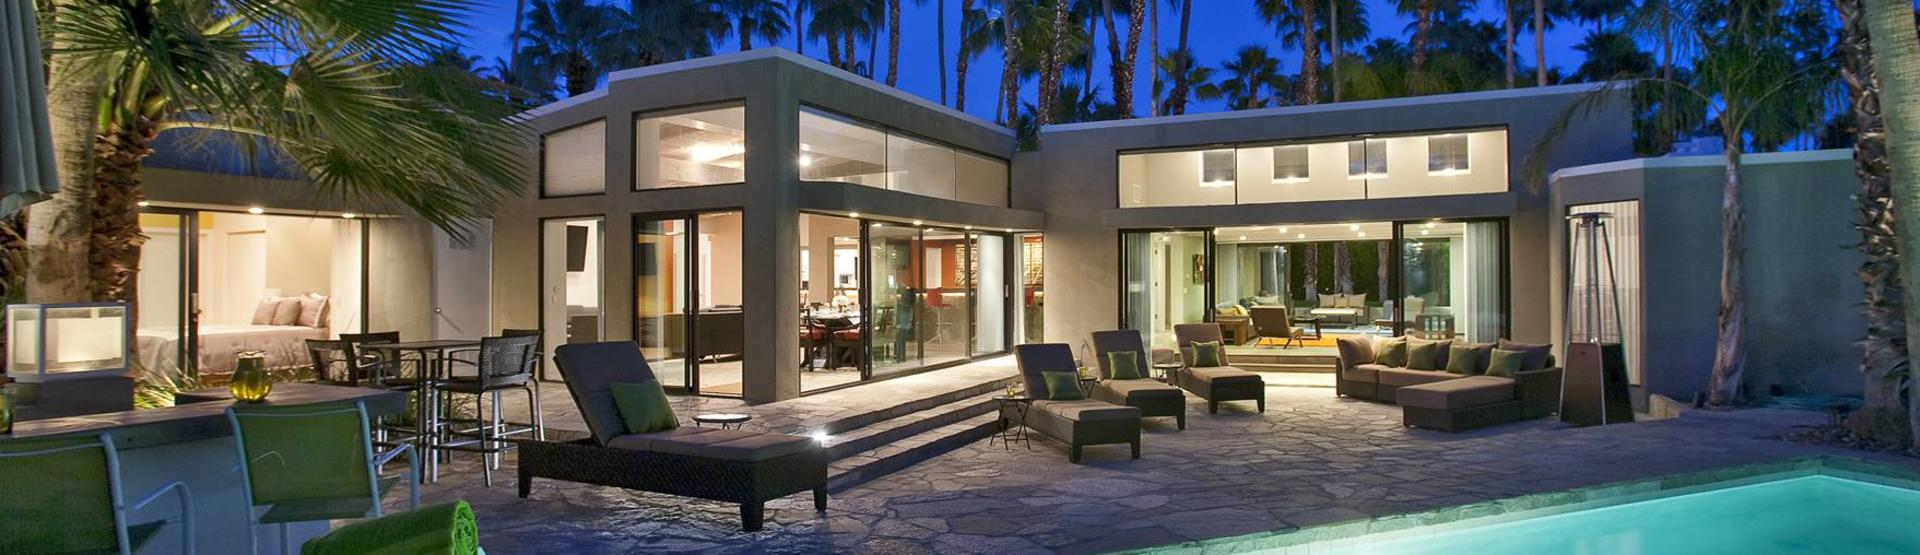 Vacation Home Rentals and Timeshares in Palm Springs